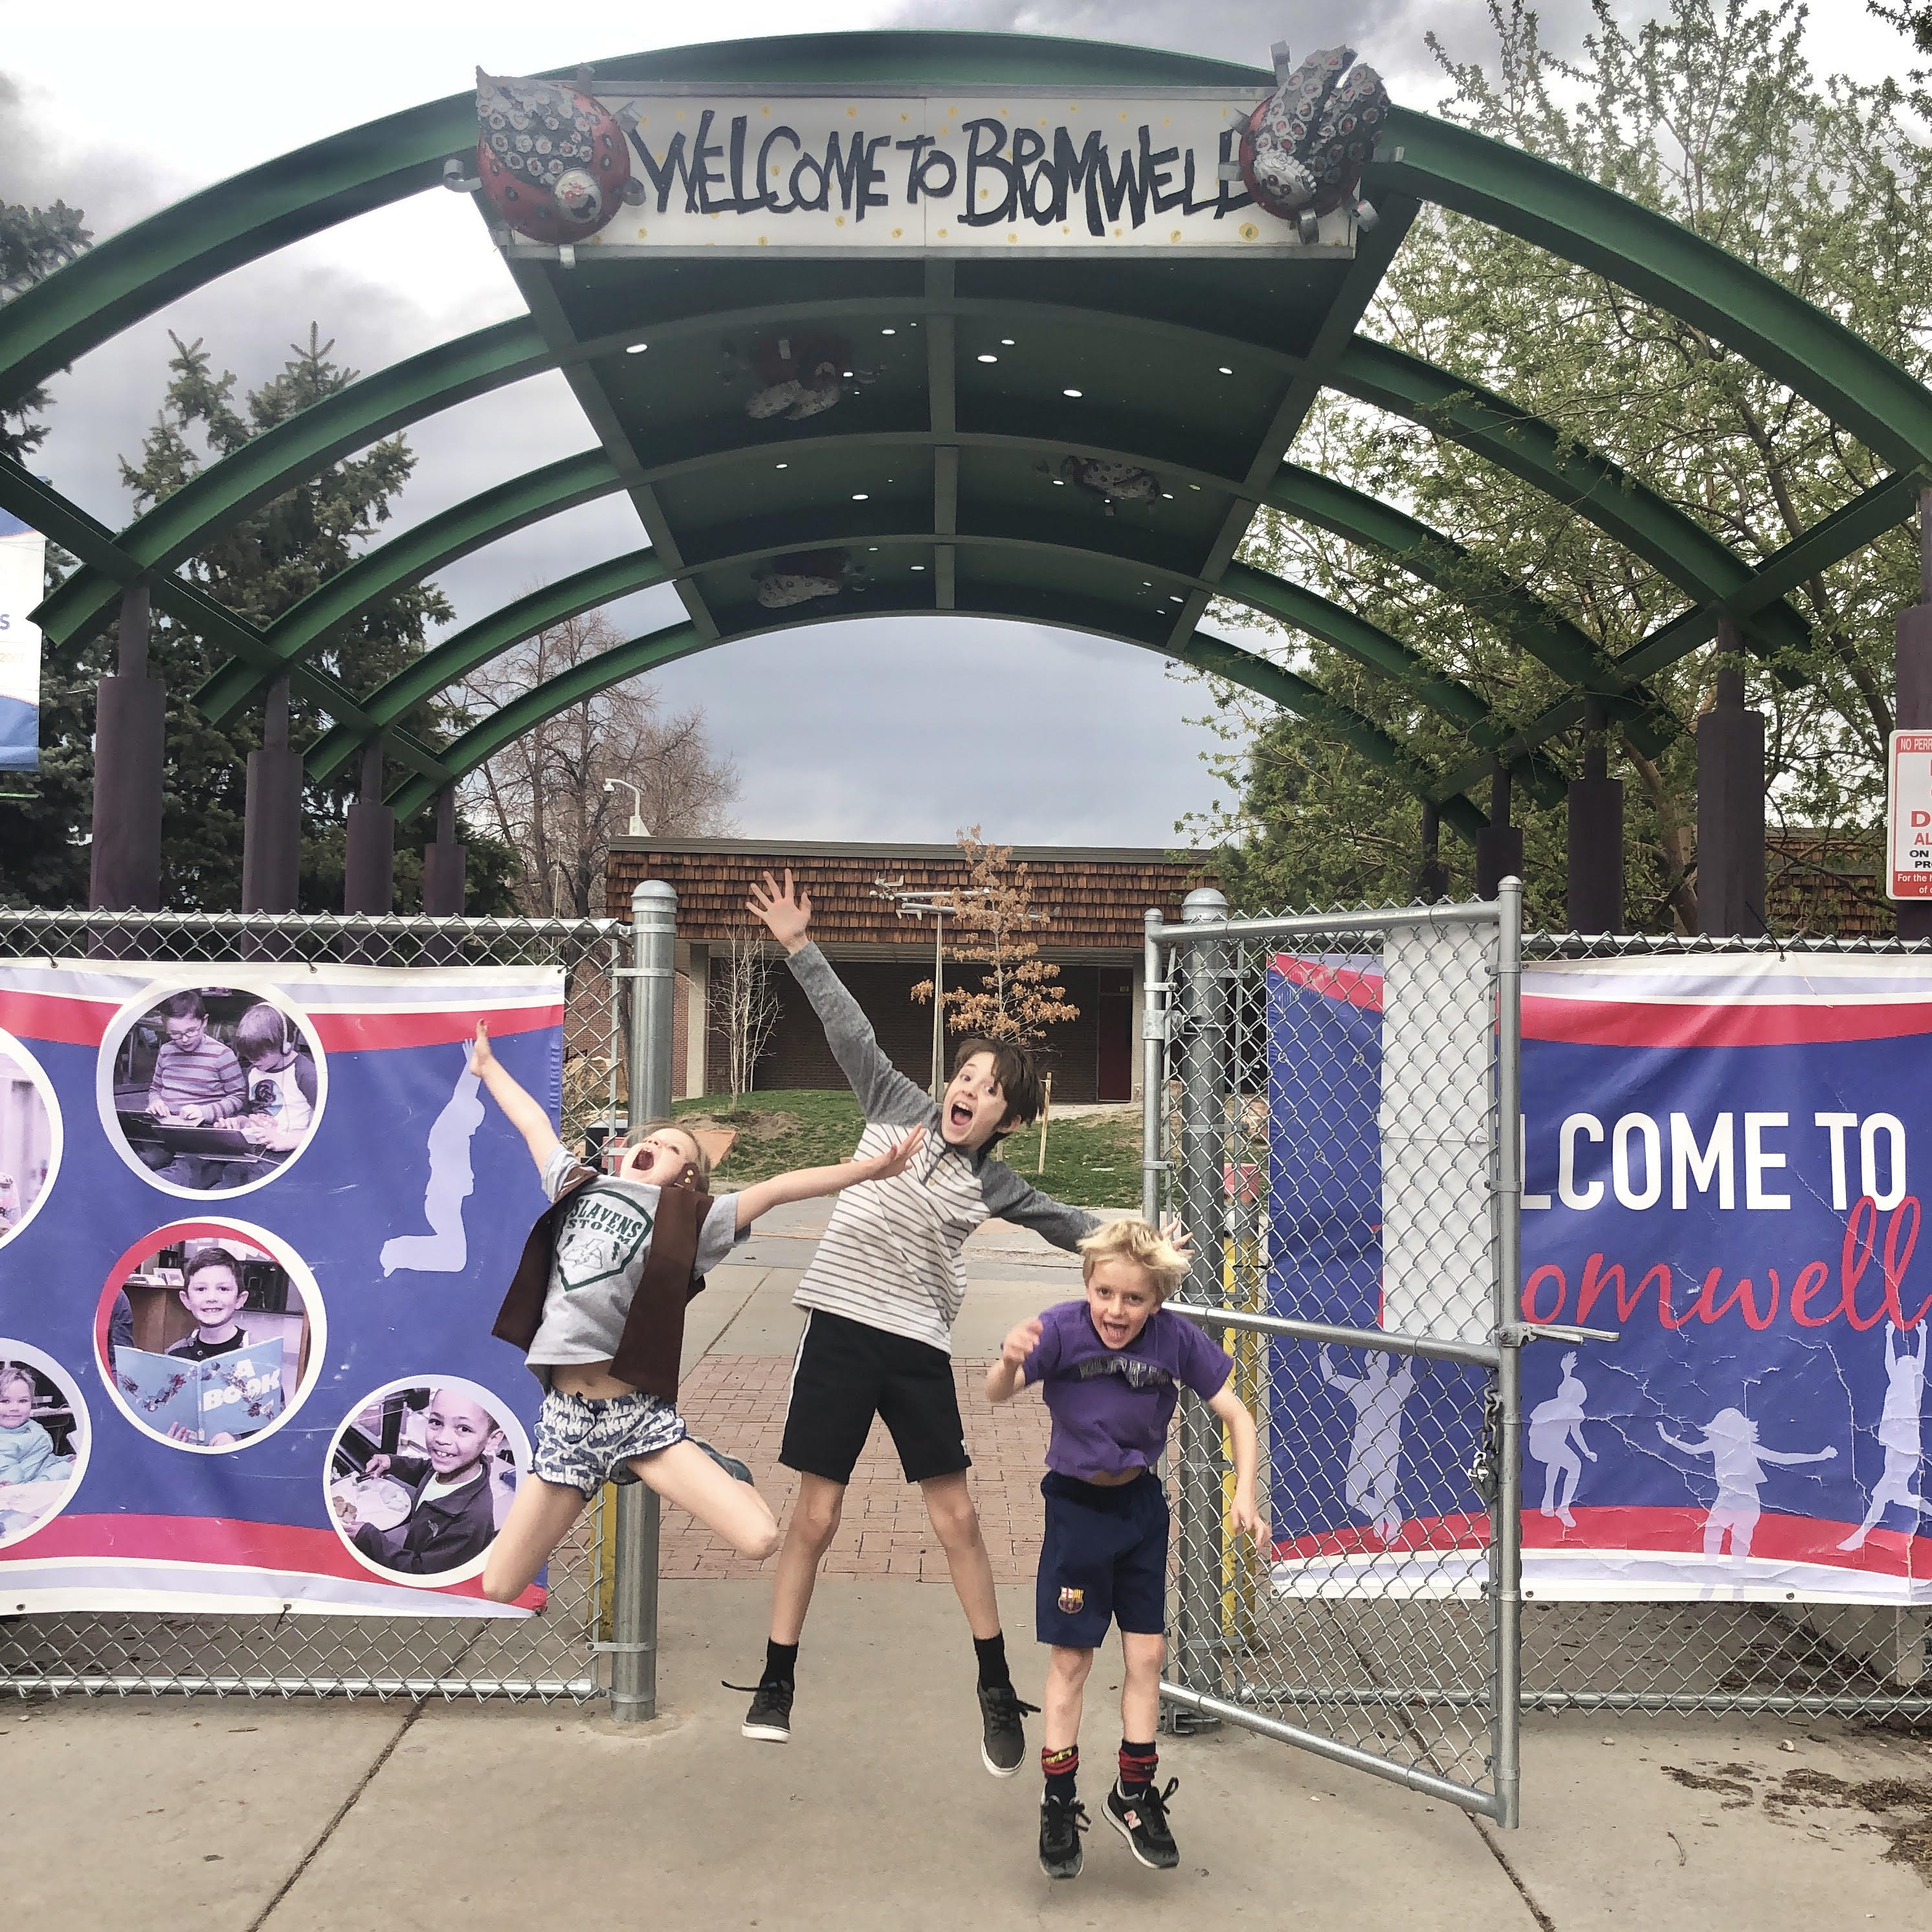 bromwell-elementary-denver-tour-club-kids-camp-entrance.jpg